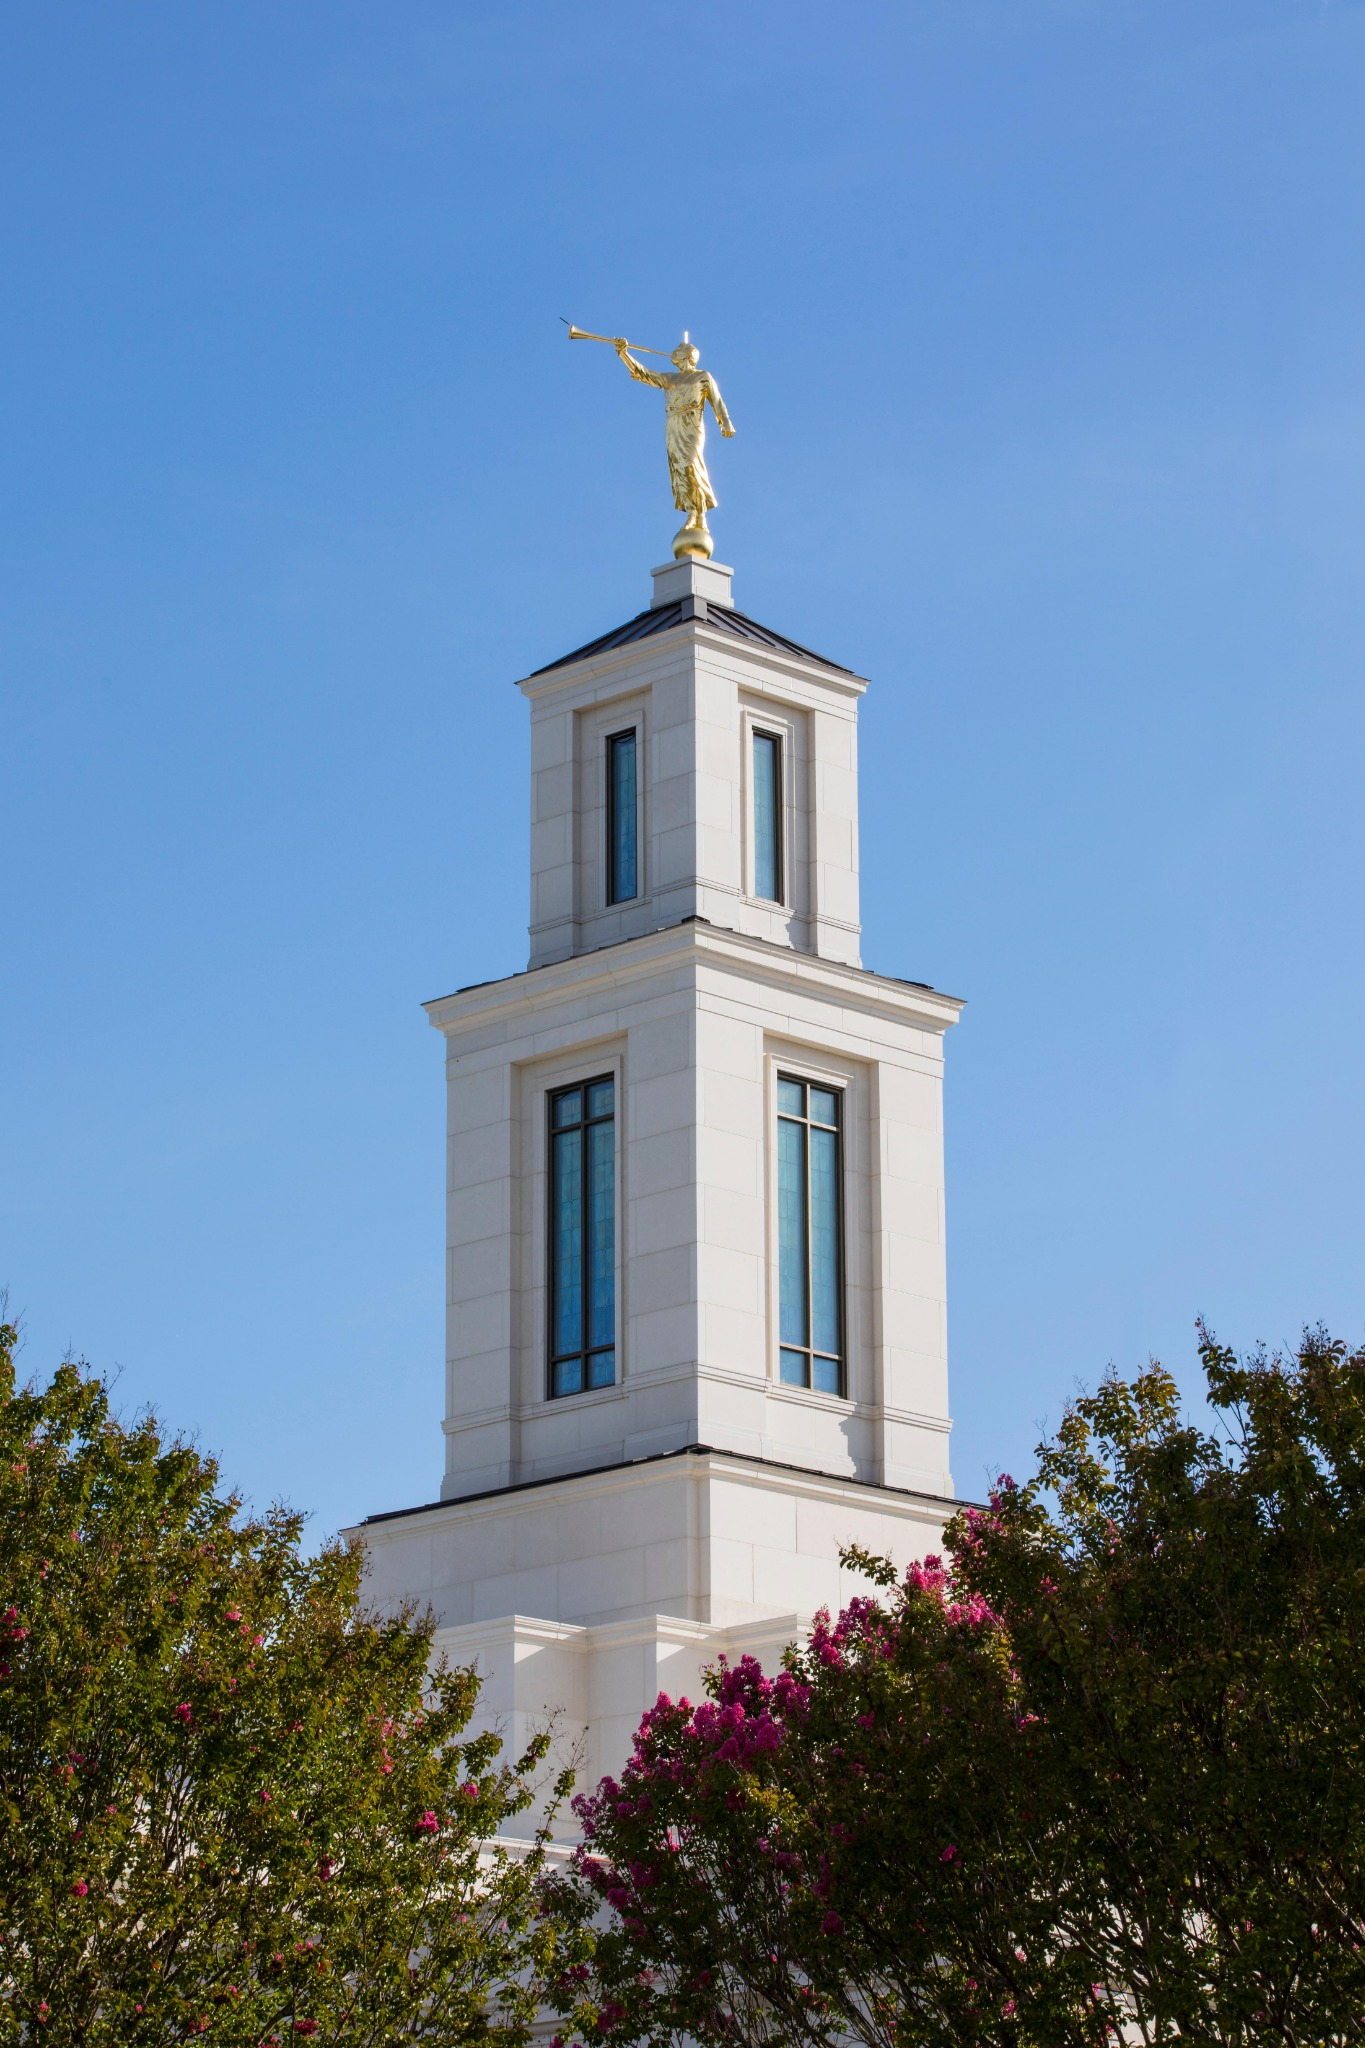 A statue of the angel Moroni, an ancient American prophet, is set on top of the Raleigh North Carolina Temple.